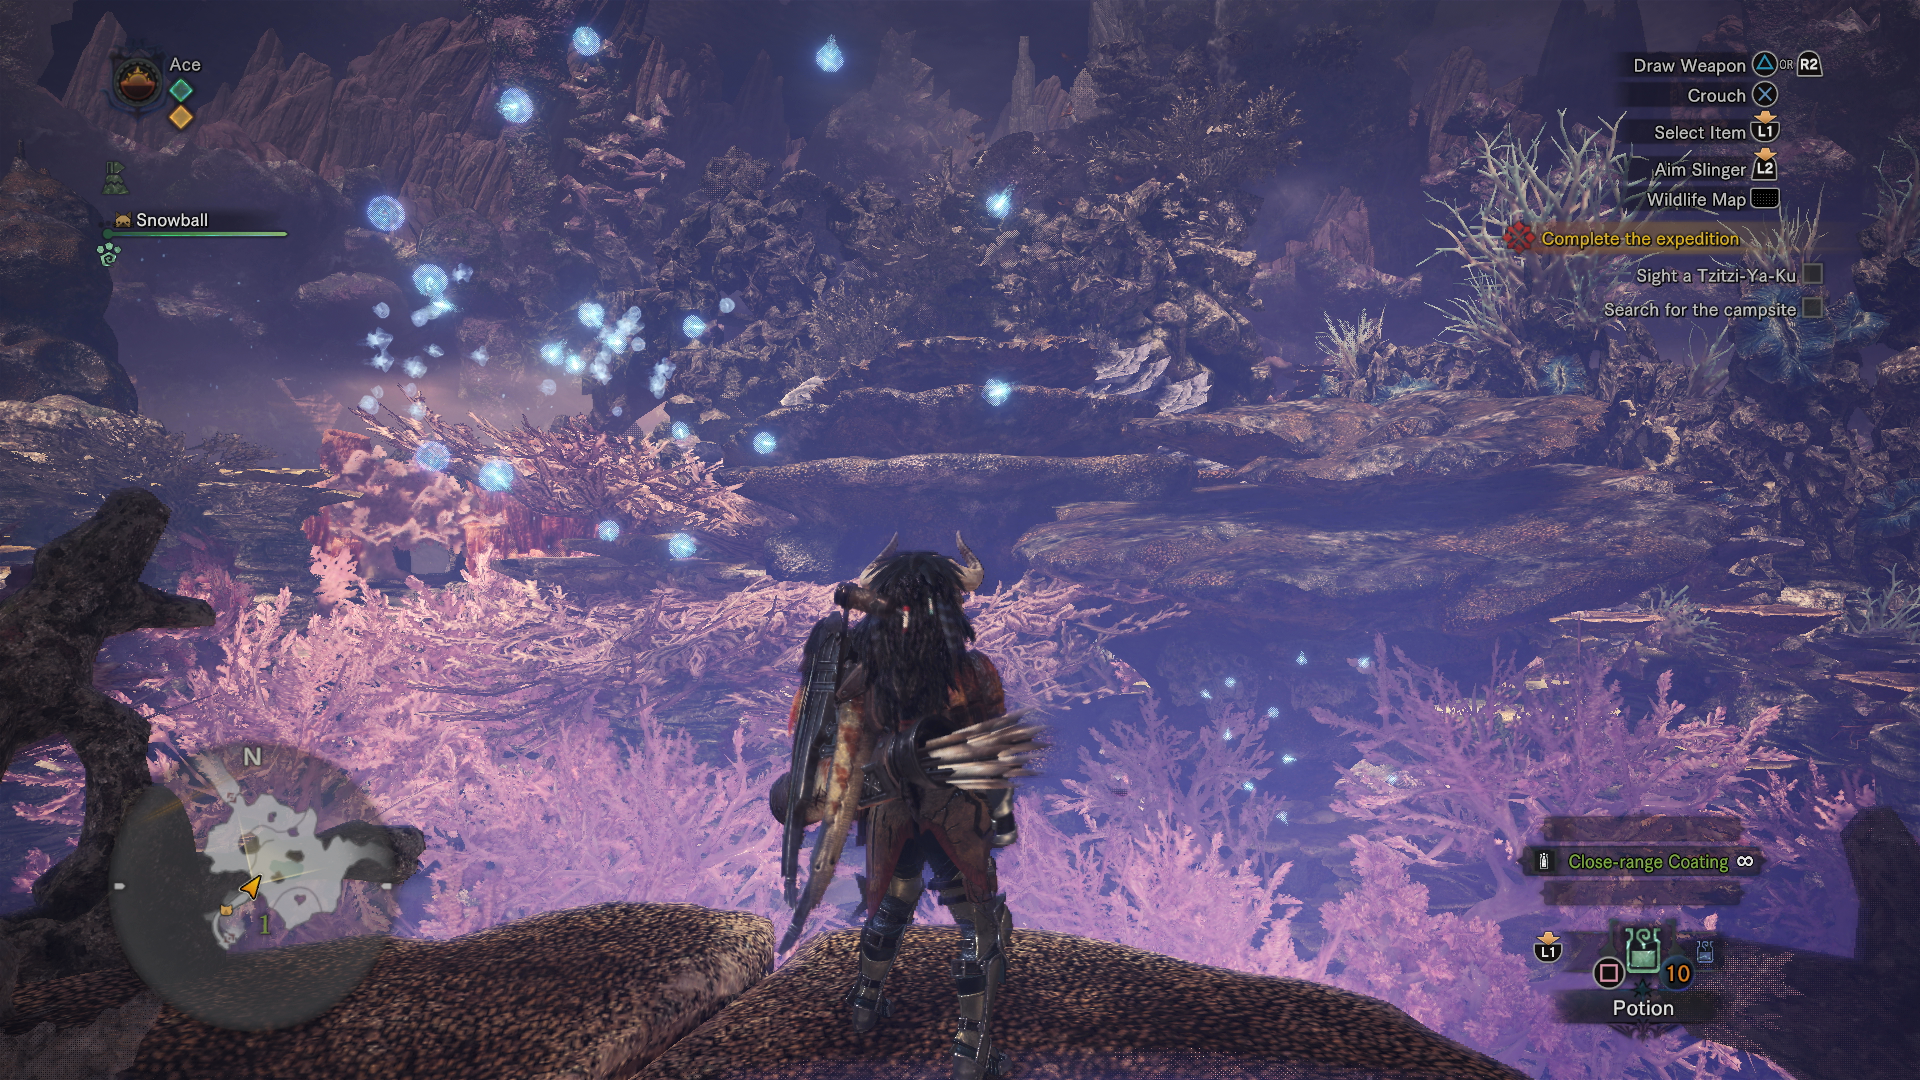 Mhw Beta Monsters >> Monster Hunter: World on Xbox One Feels Like an Afterthought | USgamer